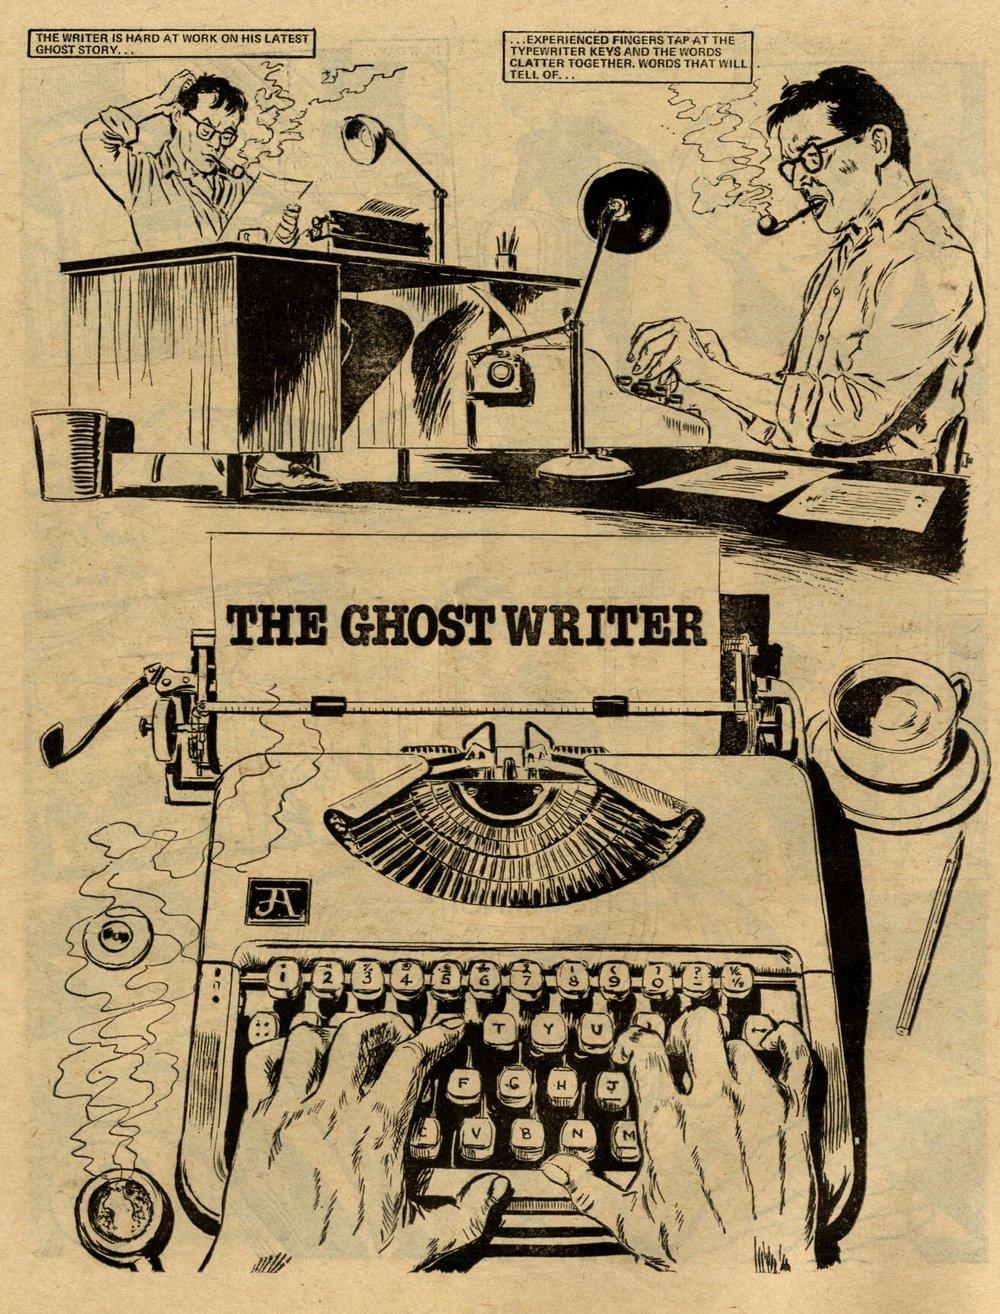 The Ghost Writer: John Armstrong (artist)